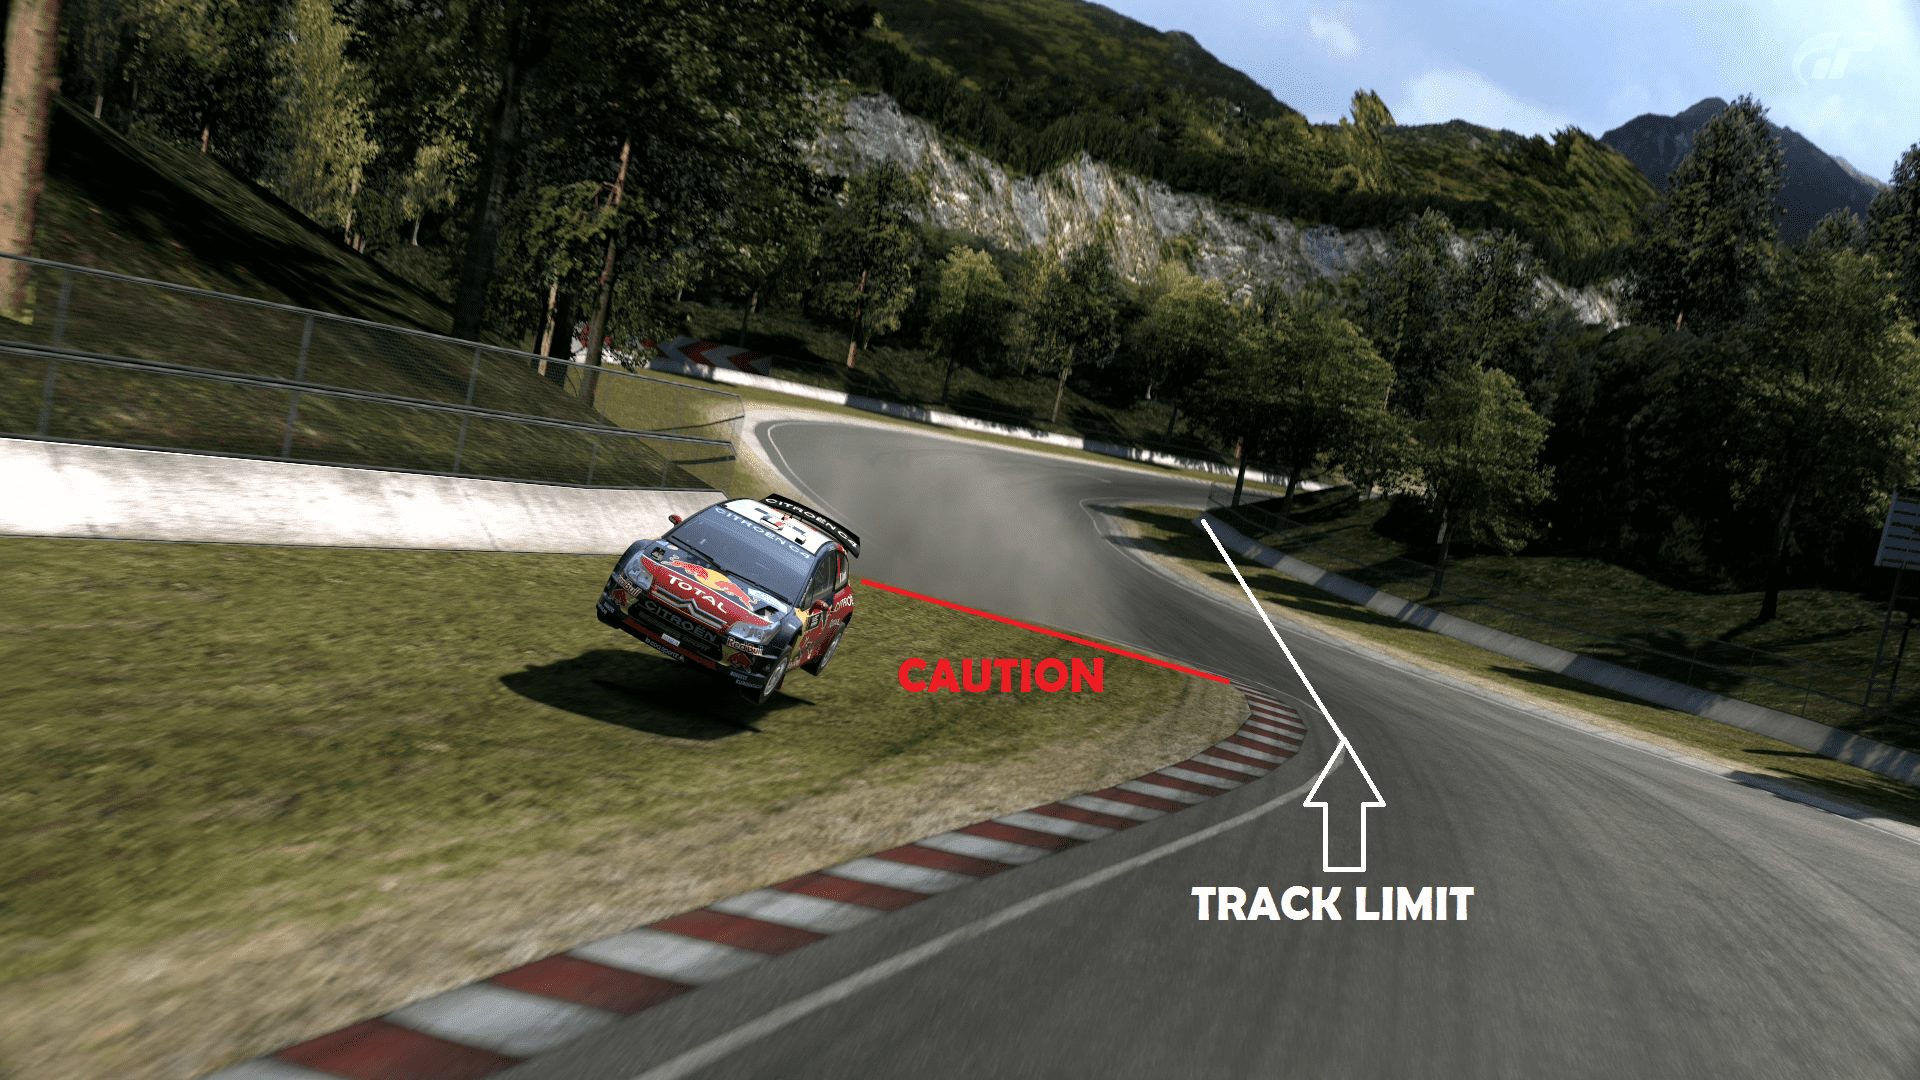 TRAIL  MOUNT TRACK LIMIT AND CAUTION 2.png